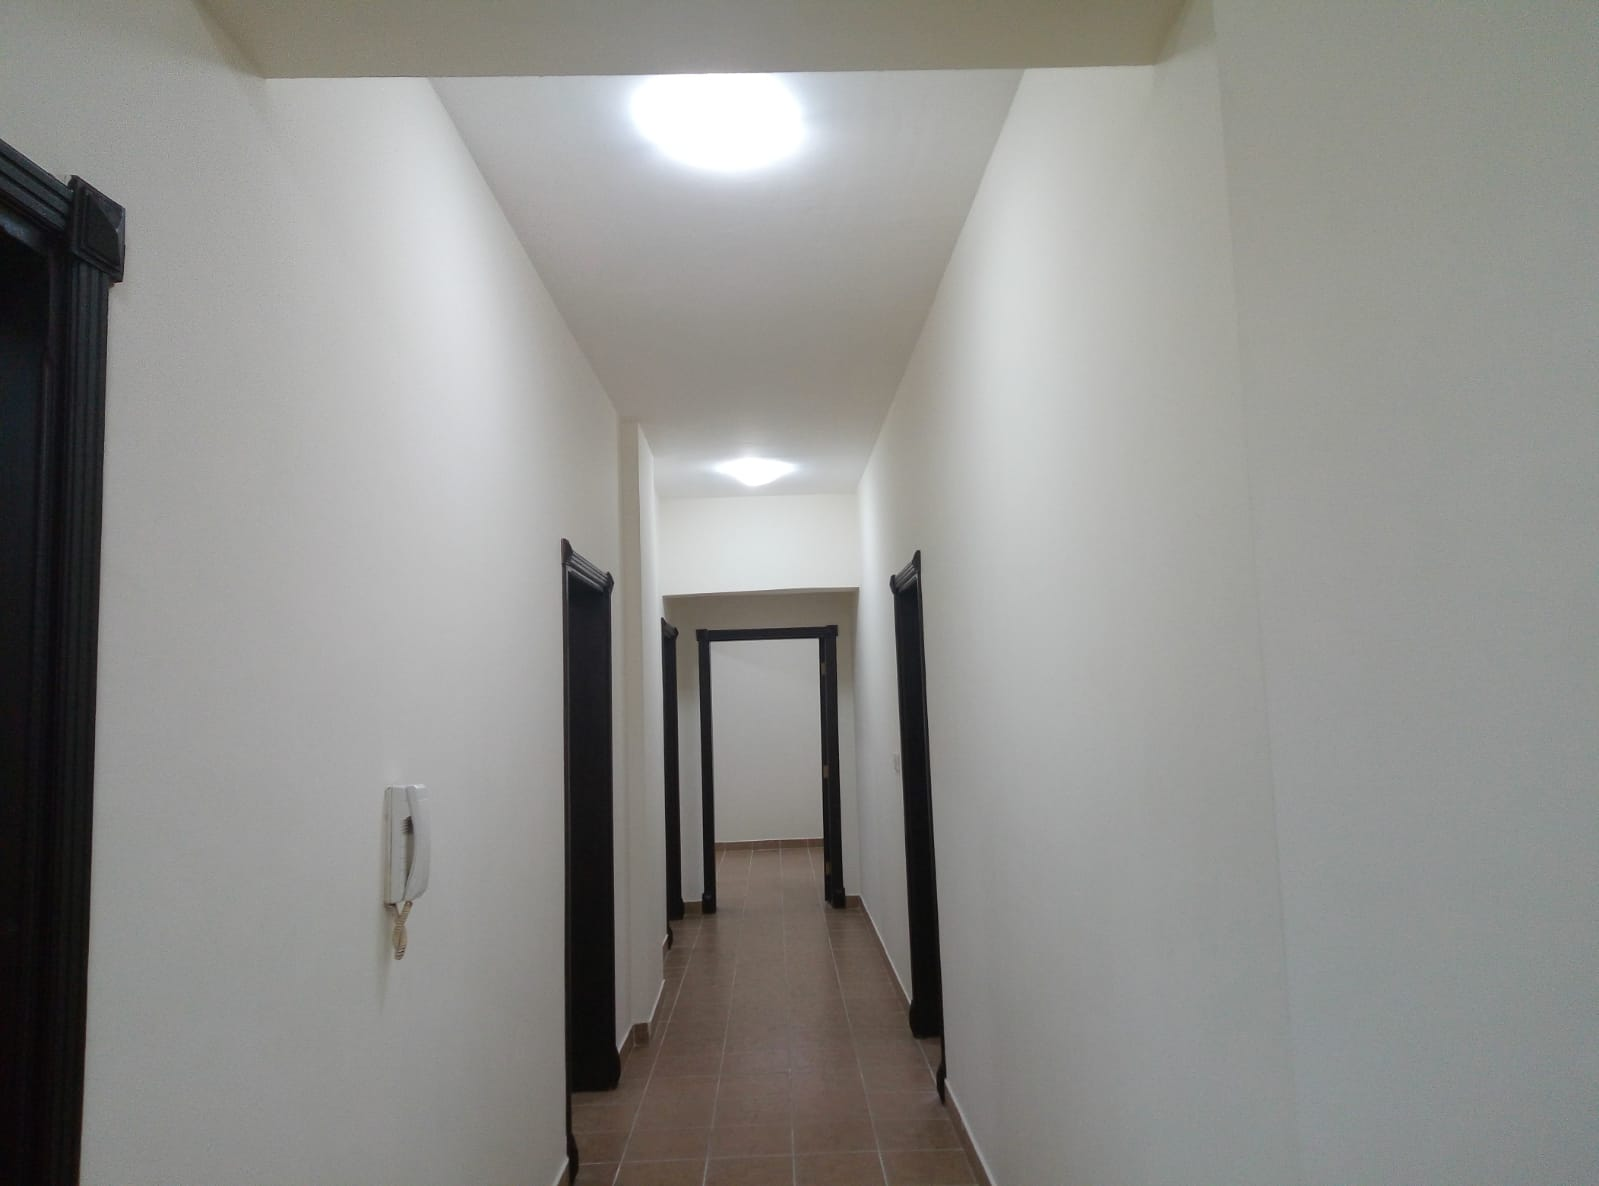 3476 Unfurnished 3 BHK Apartment for Rent in Doha | Qatar ...